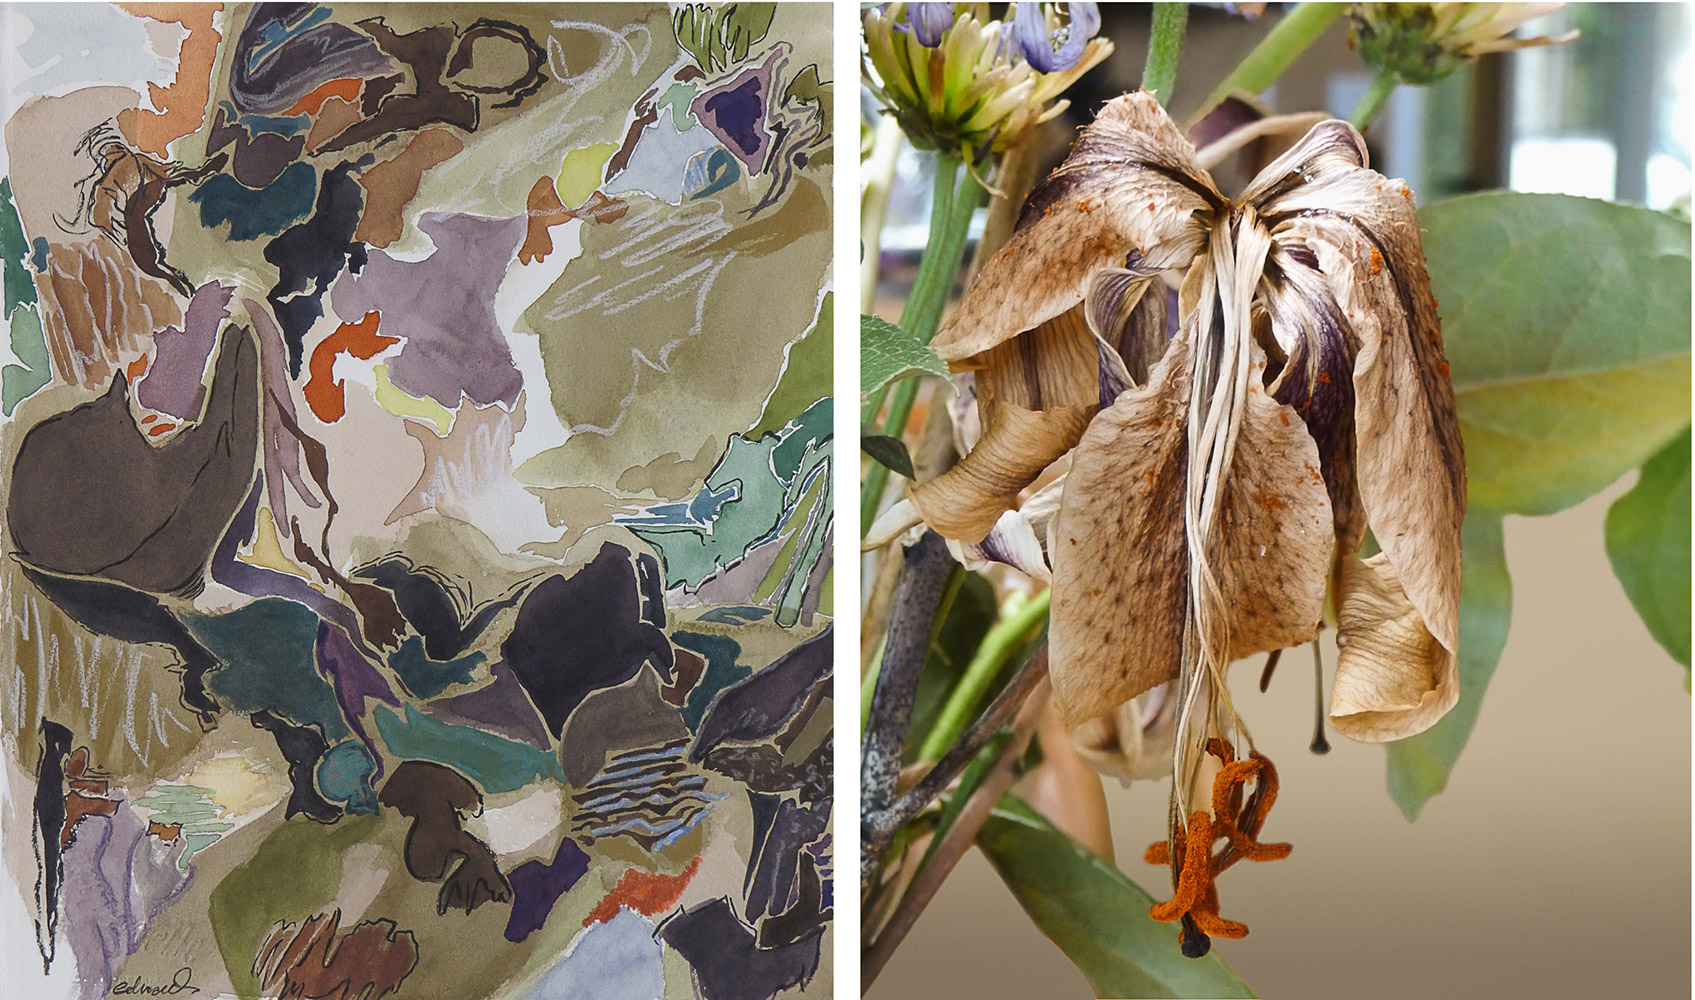 dying lily_digital print with mixed media painting by photographer barbra edwards, Pender Island, British Columbia